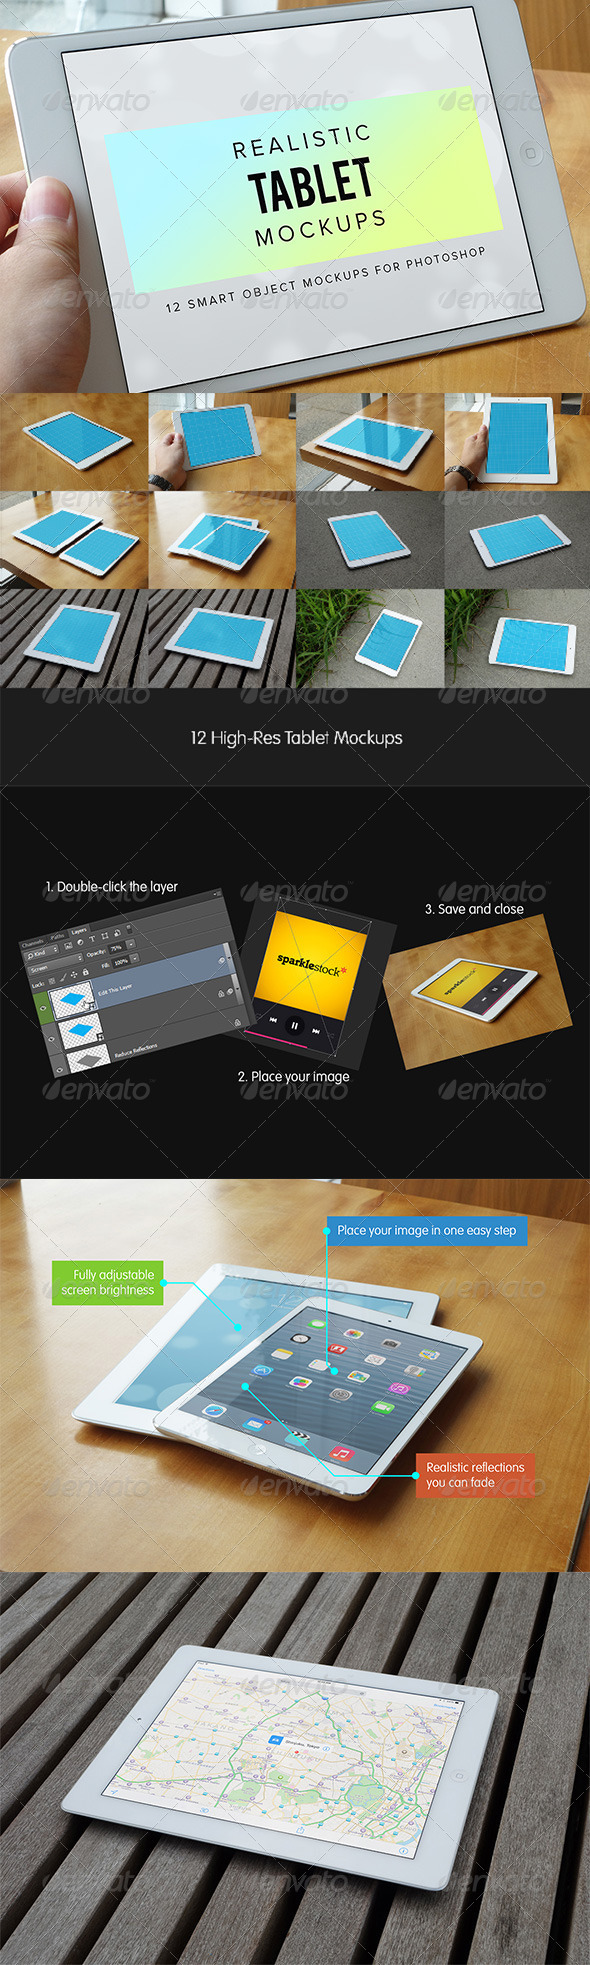 12 Realistic Tablet Mockups - Mobile Displays